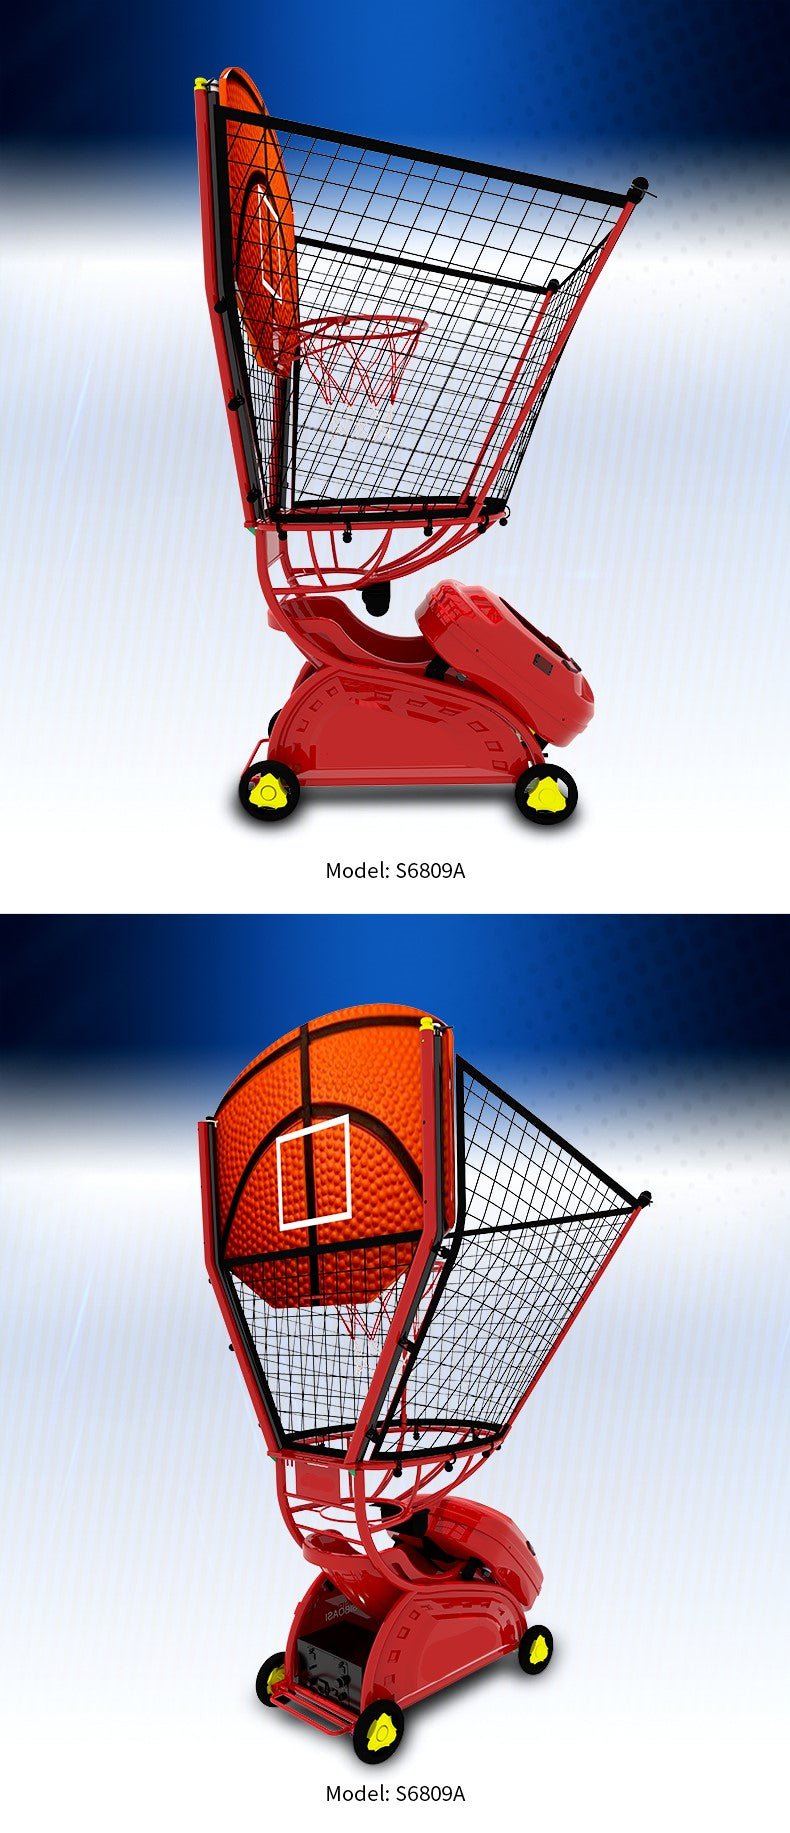 Kids Basketball Training machine - Product Photos